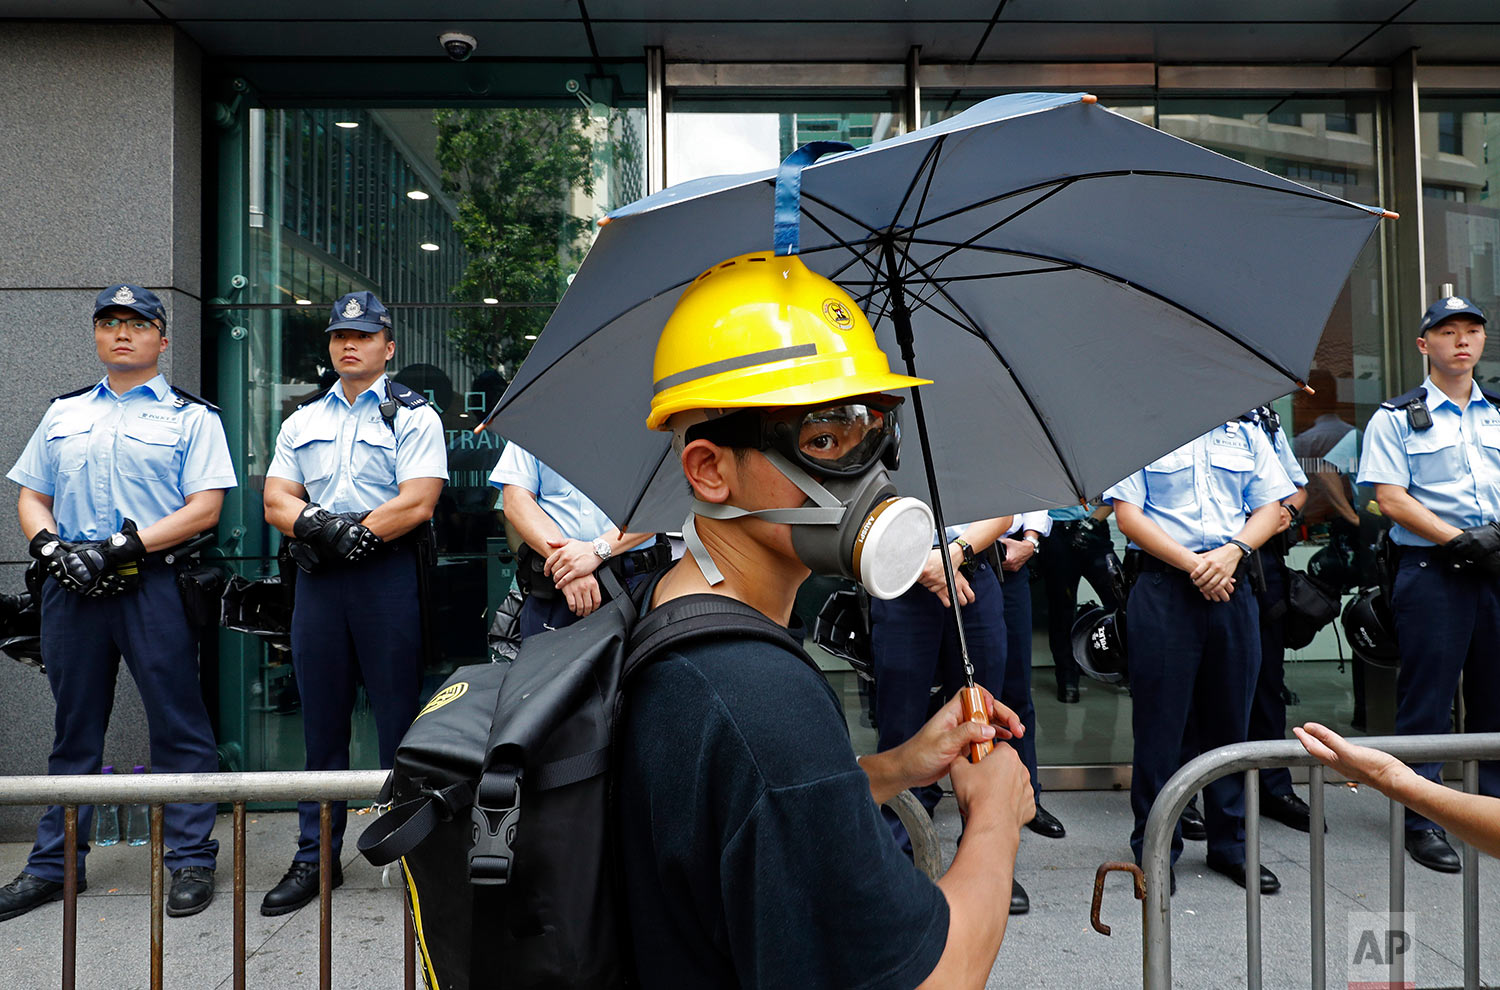 A protestor stands in front of a line of policemen outside the police headquarters in Hong Kong on June 21, 2019. (AP Photo/Vincent Yu)